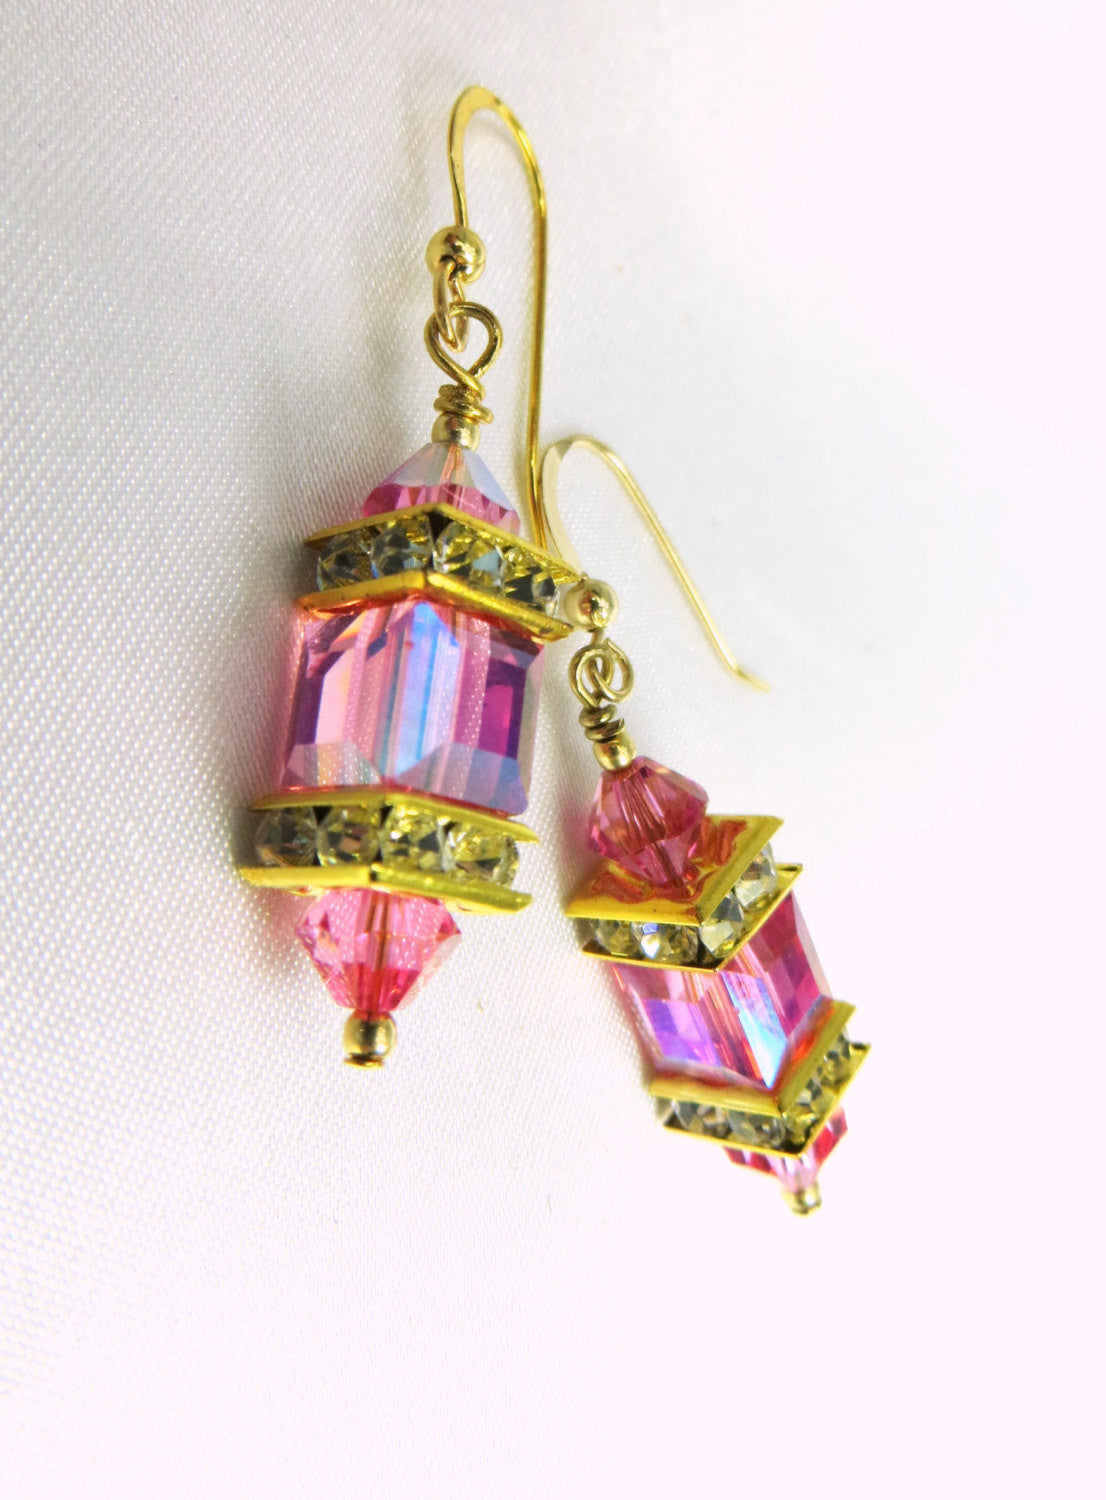 Swarovski Cube Pink Rose AB aurora borealis Earrings on 14k Gold Fill - Odyssey Creations